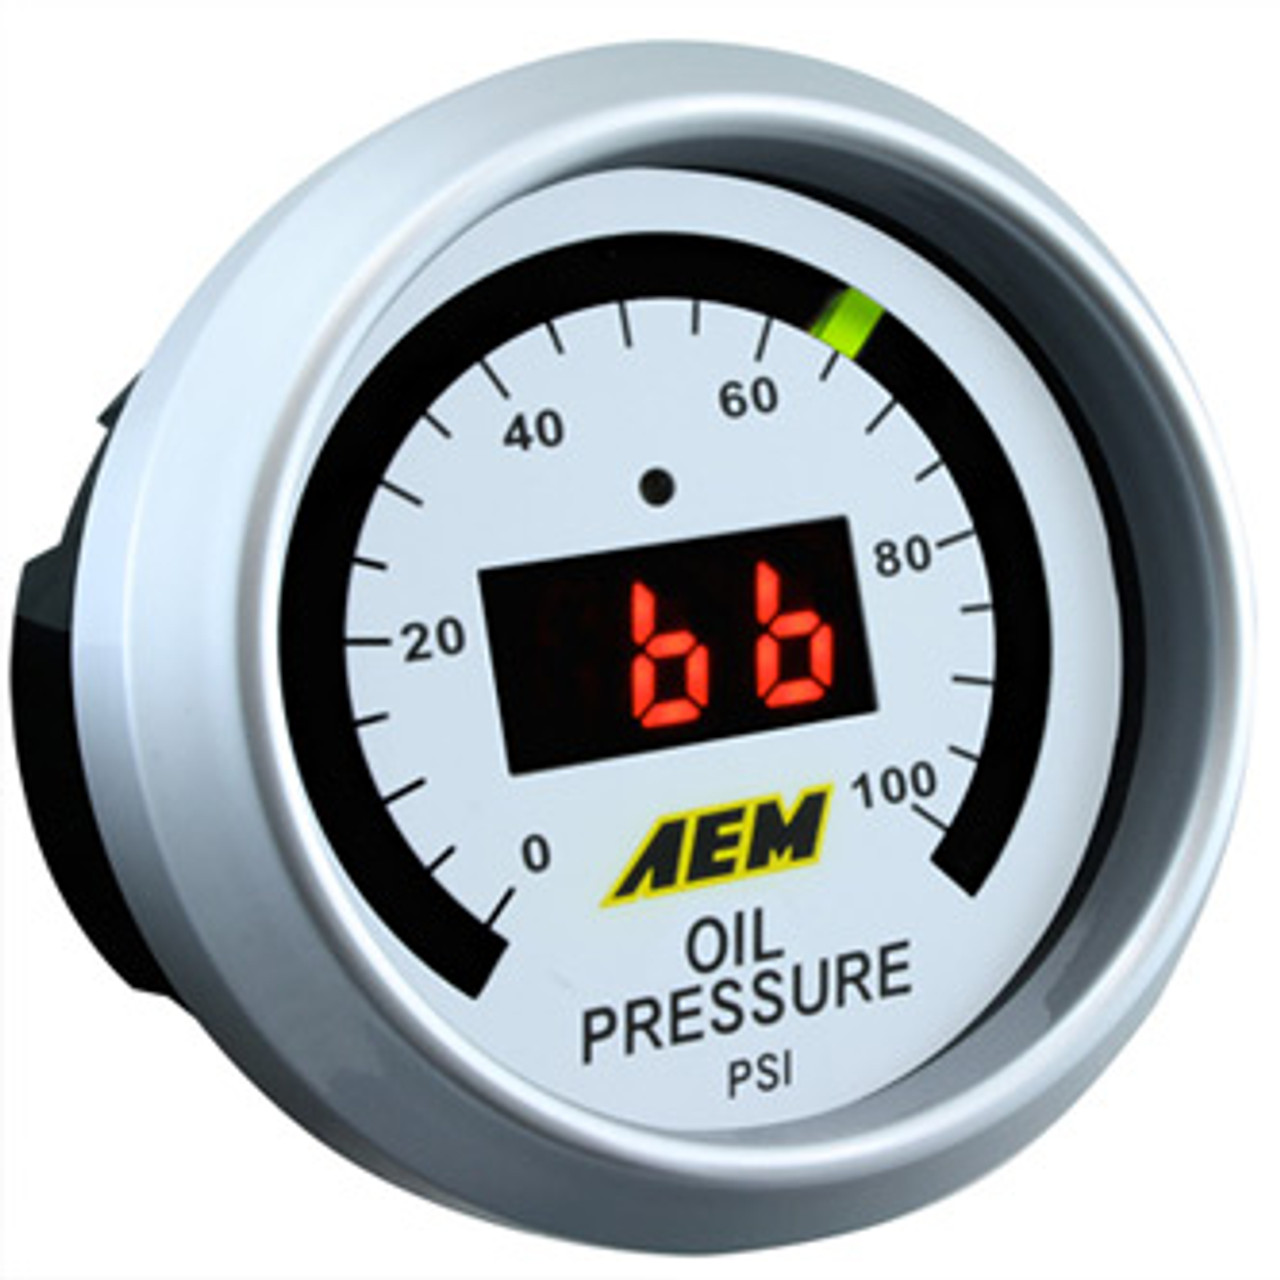 AEM Digital Oil Pressure Gauge 100psi